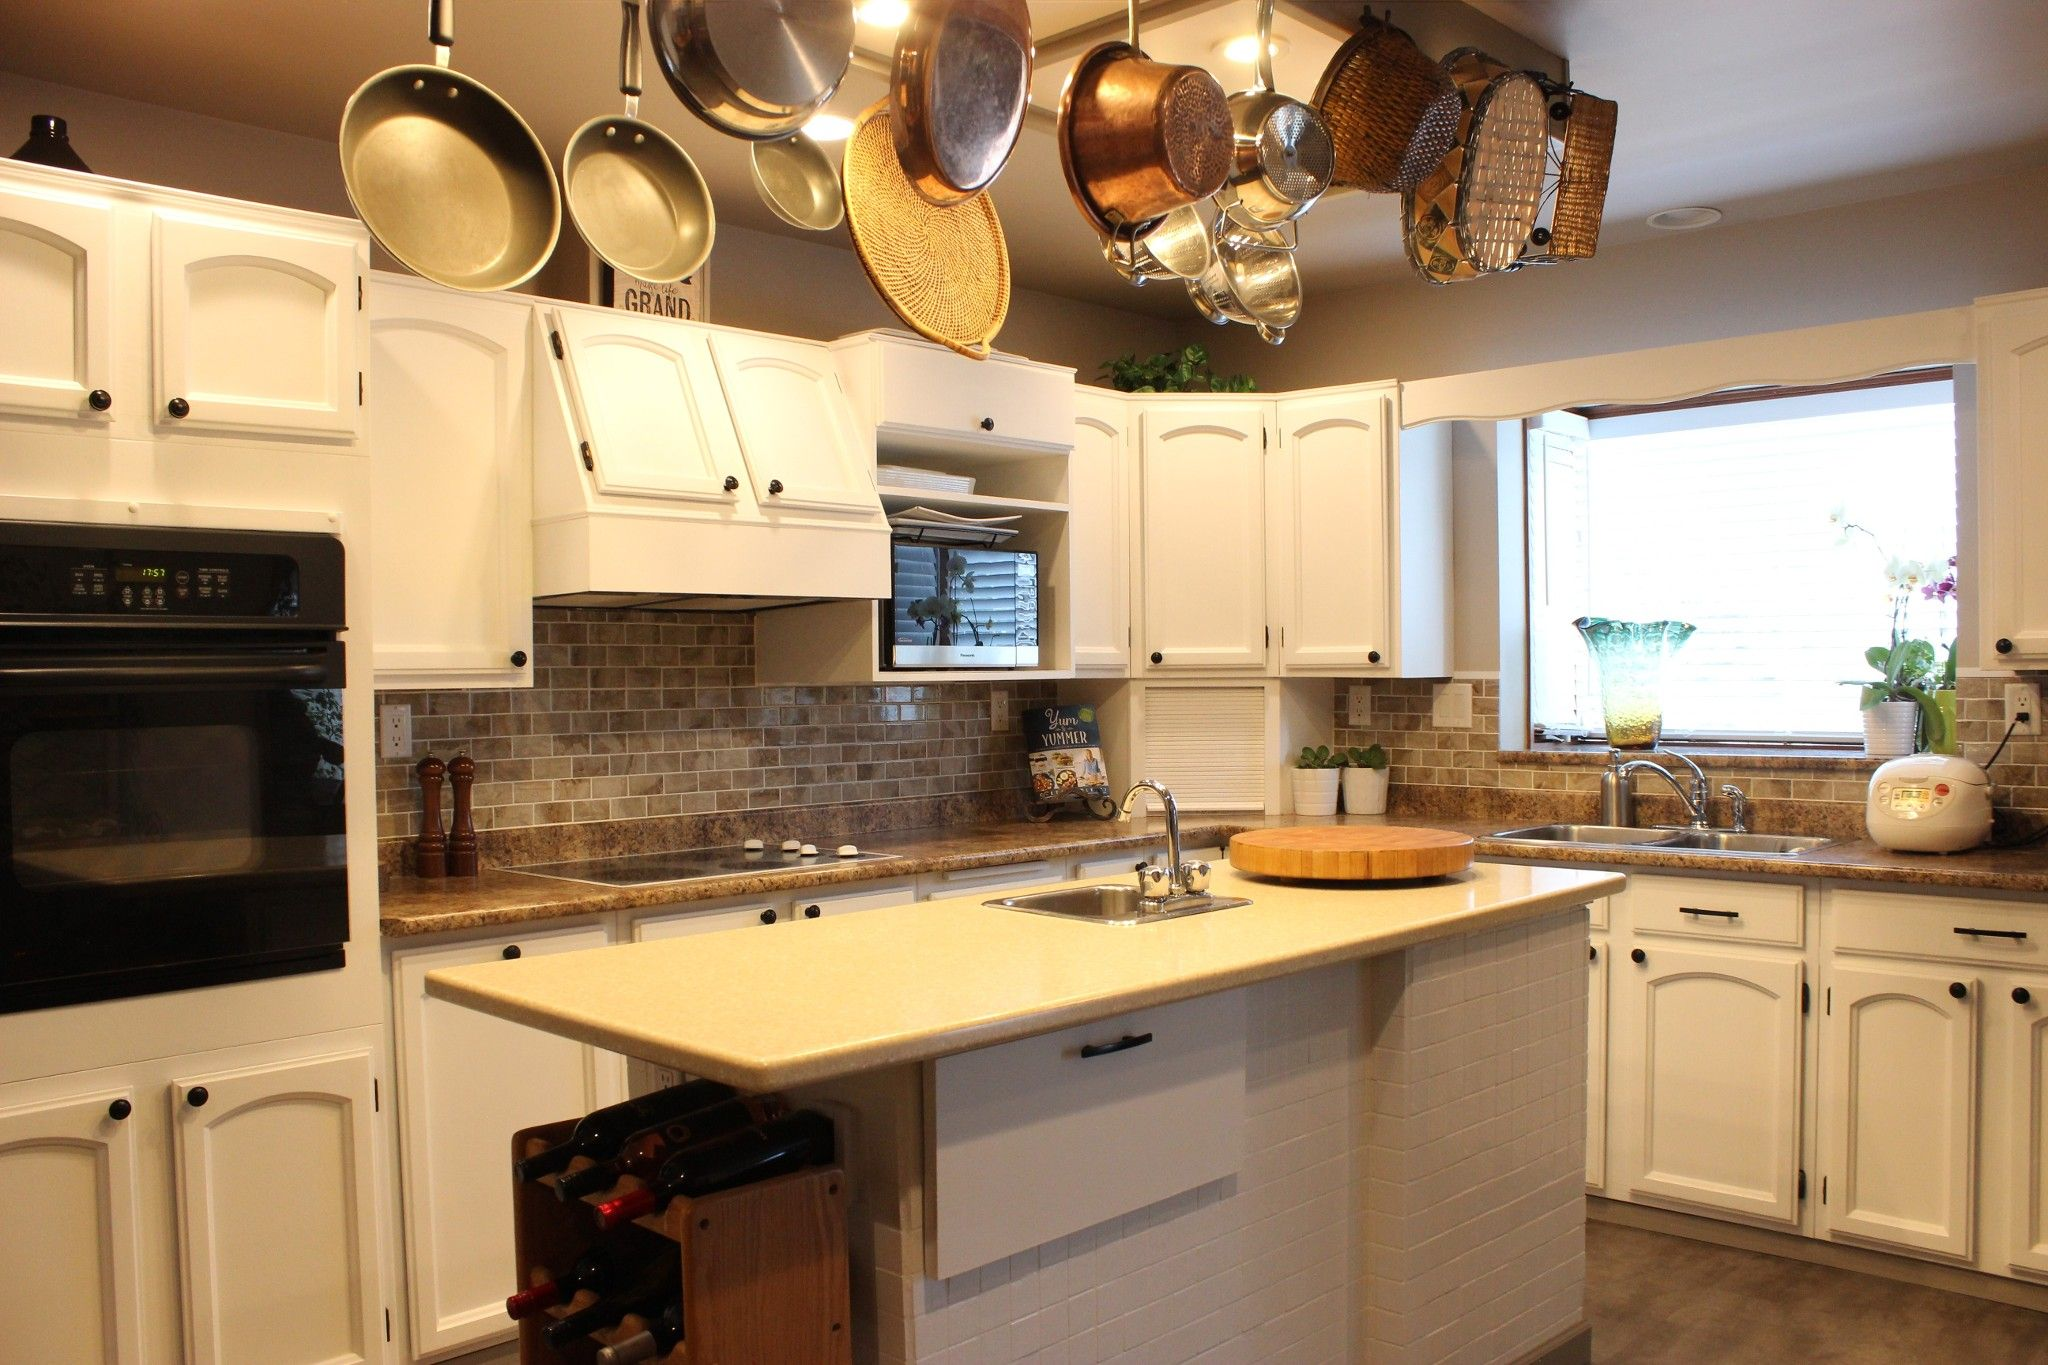 Photo 9: Photos: 3461 Navatanee Drive in Kamloops: South Thompson Valley House for sale : MLS®# 150033